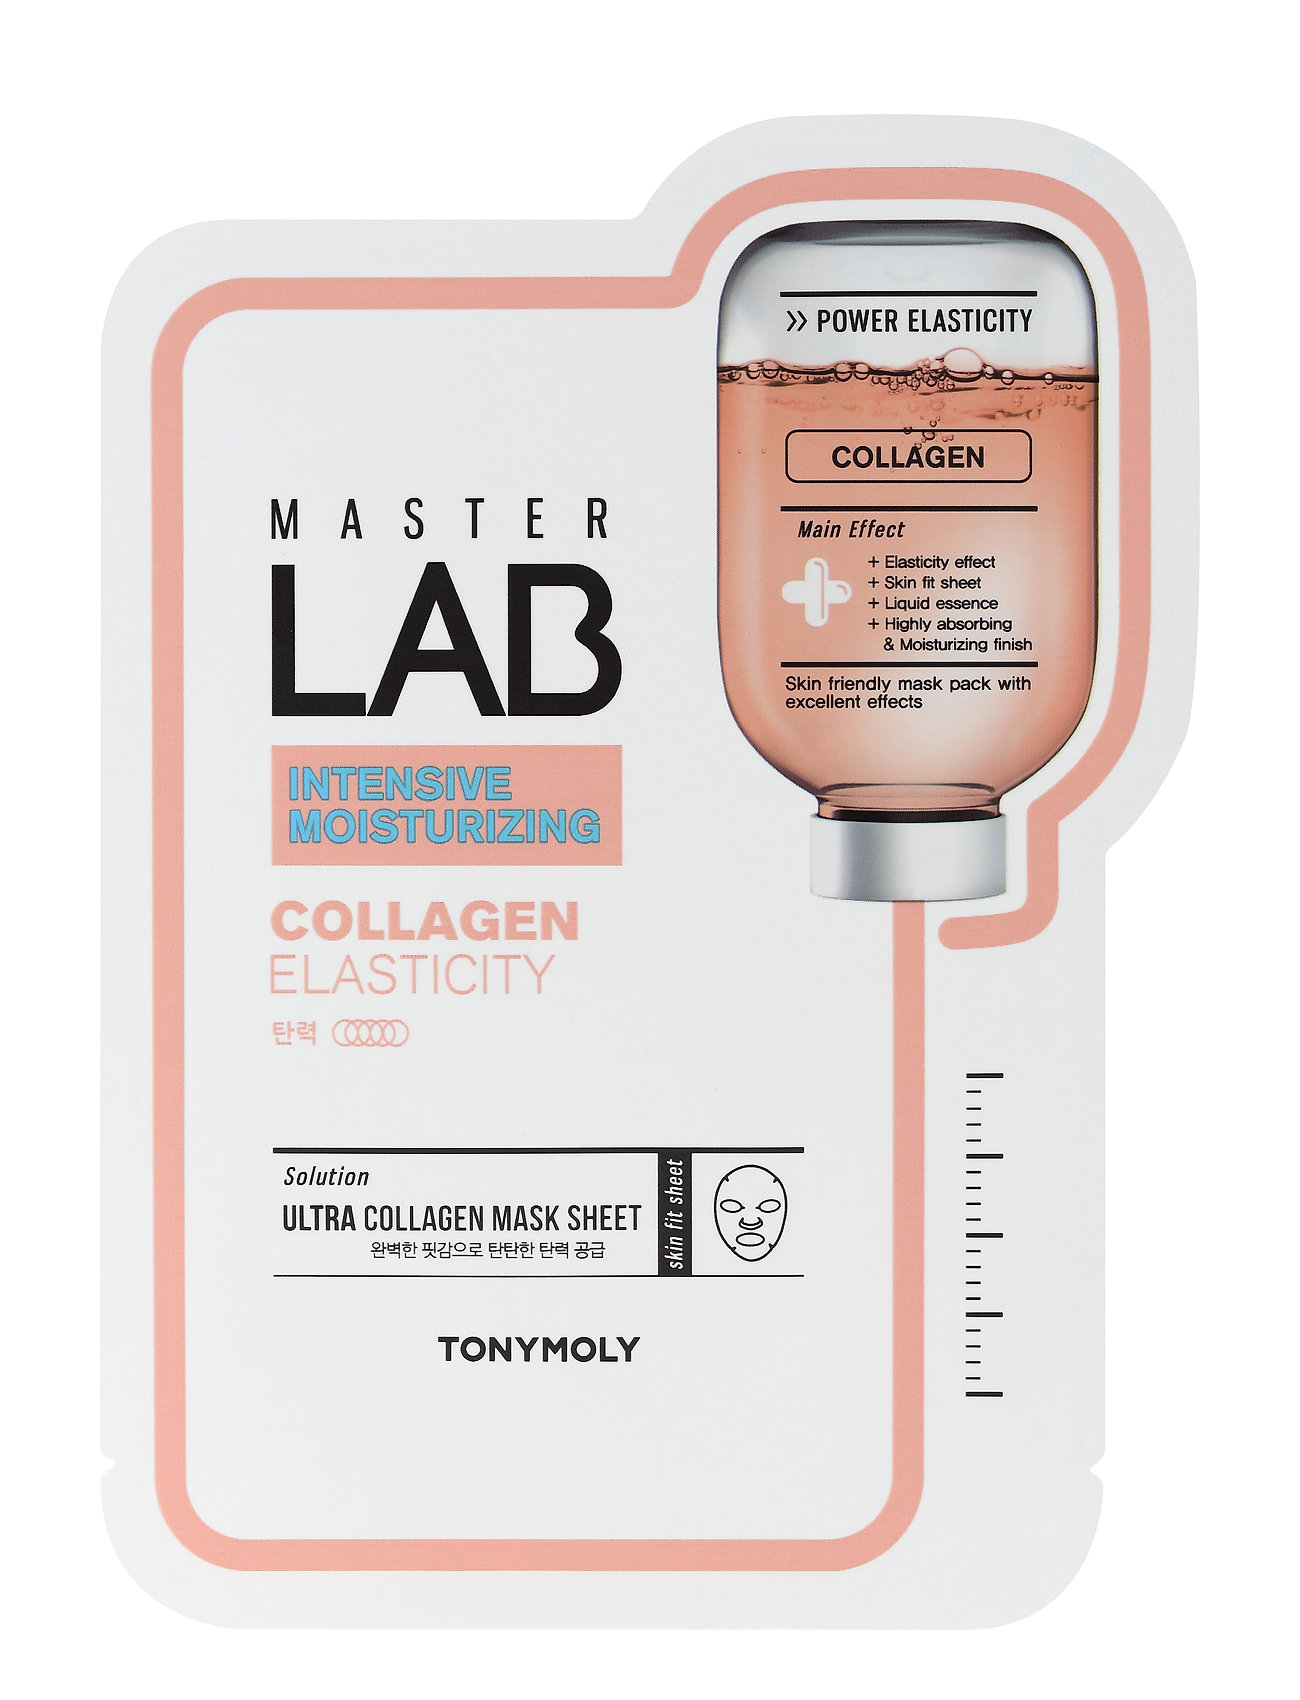 Tonymoly Master Lab Sheet Mask Collagen - CLEAR